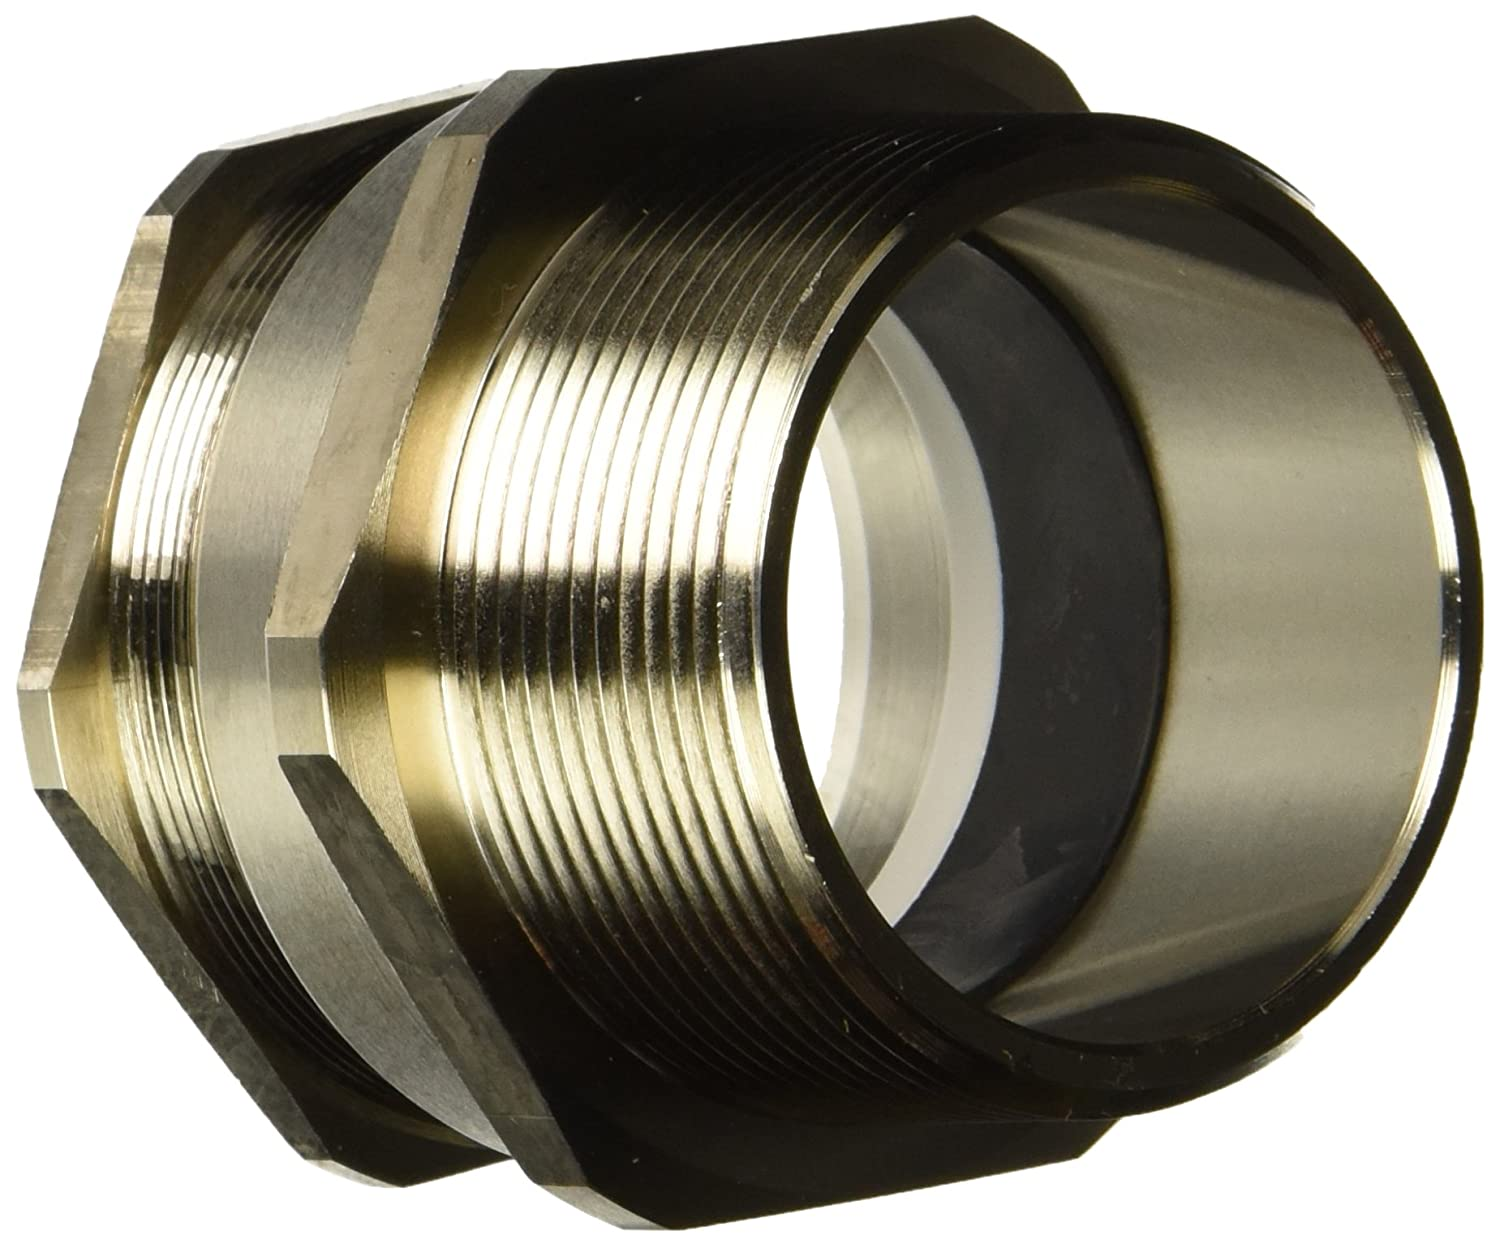 Image of Connectors & Adapters Appleton 63SA2F2005 Hazardous Location Cable Gland, Unarmored, Straight, 2' NPT, Size 63S